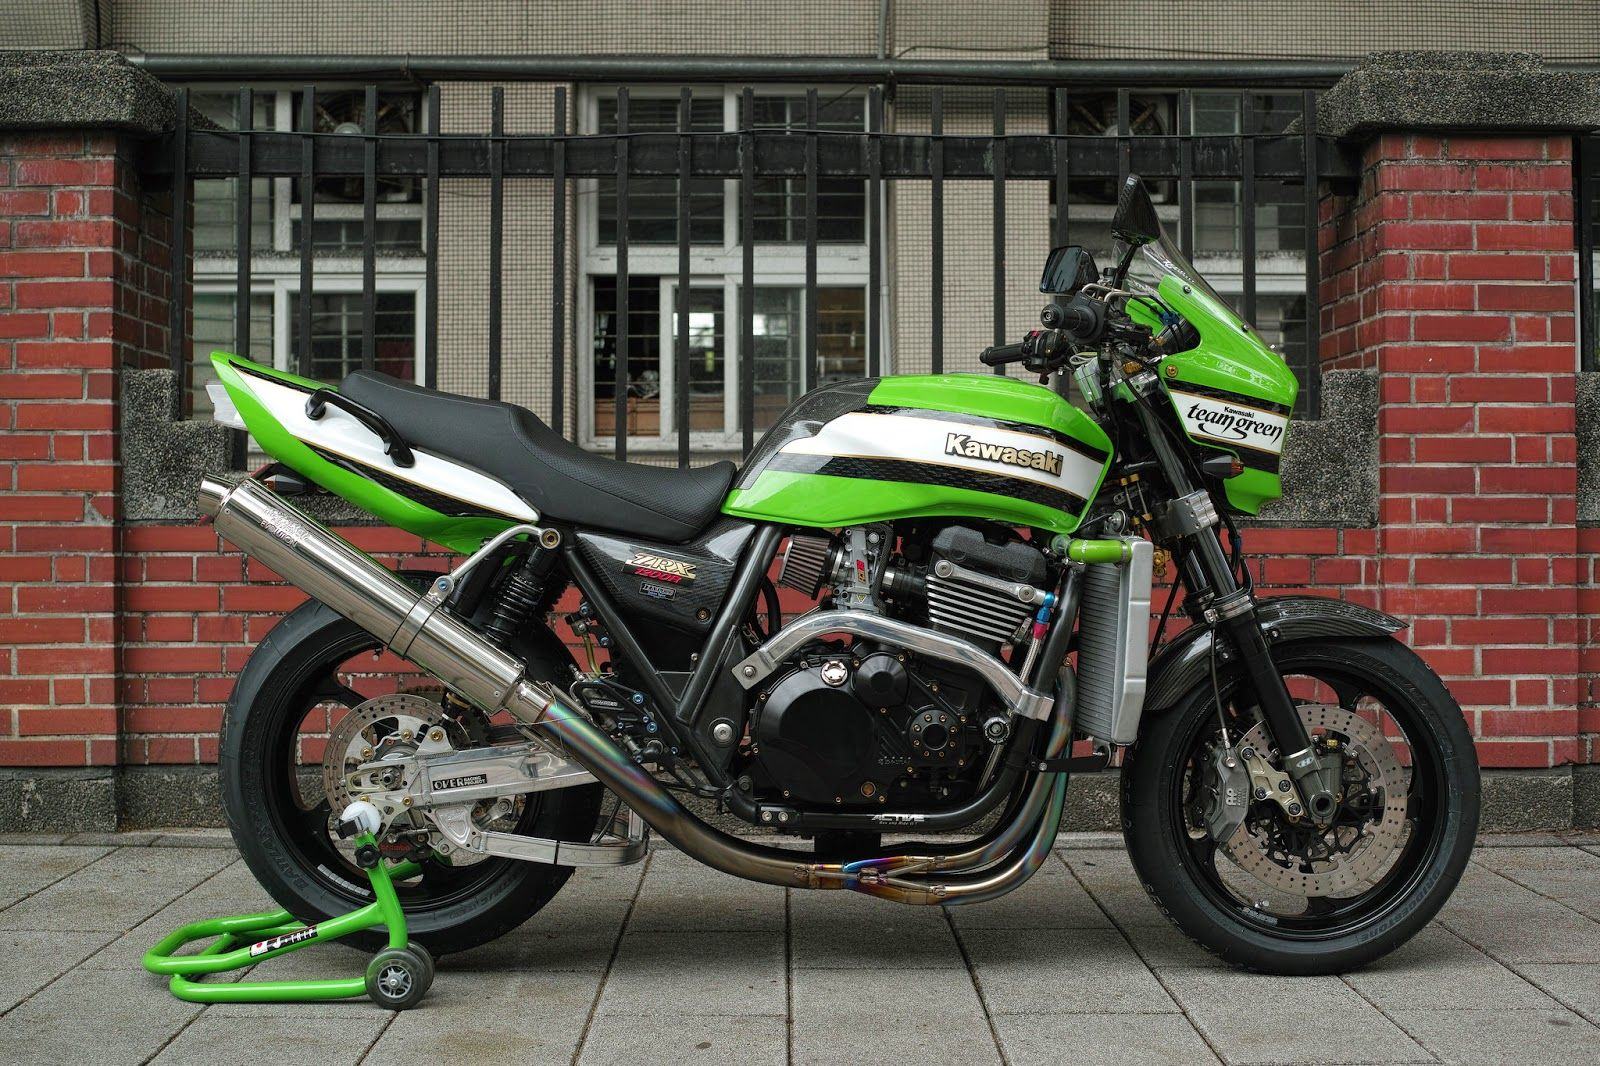 66 best images about ZRX 1200 on Pinterest | 1200 custom